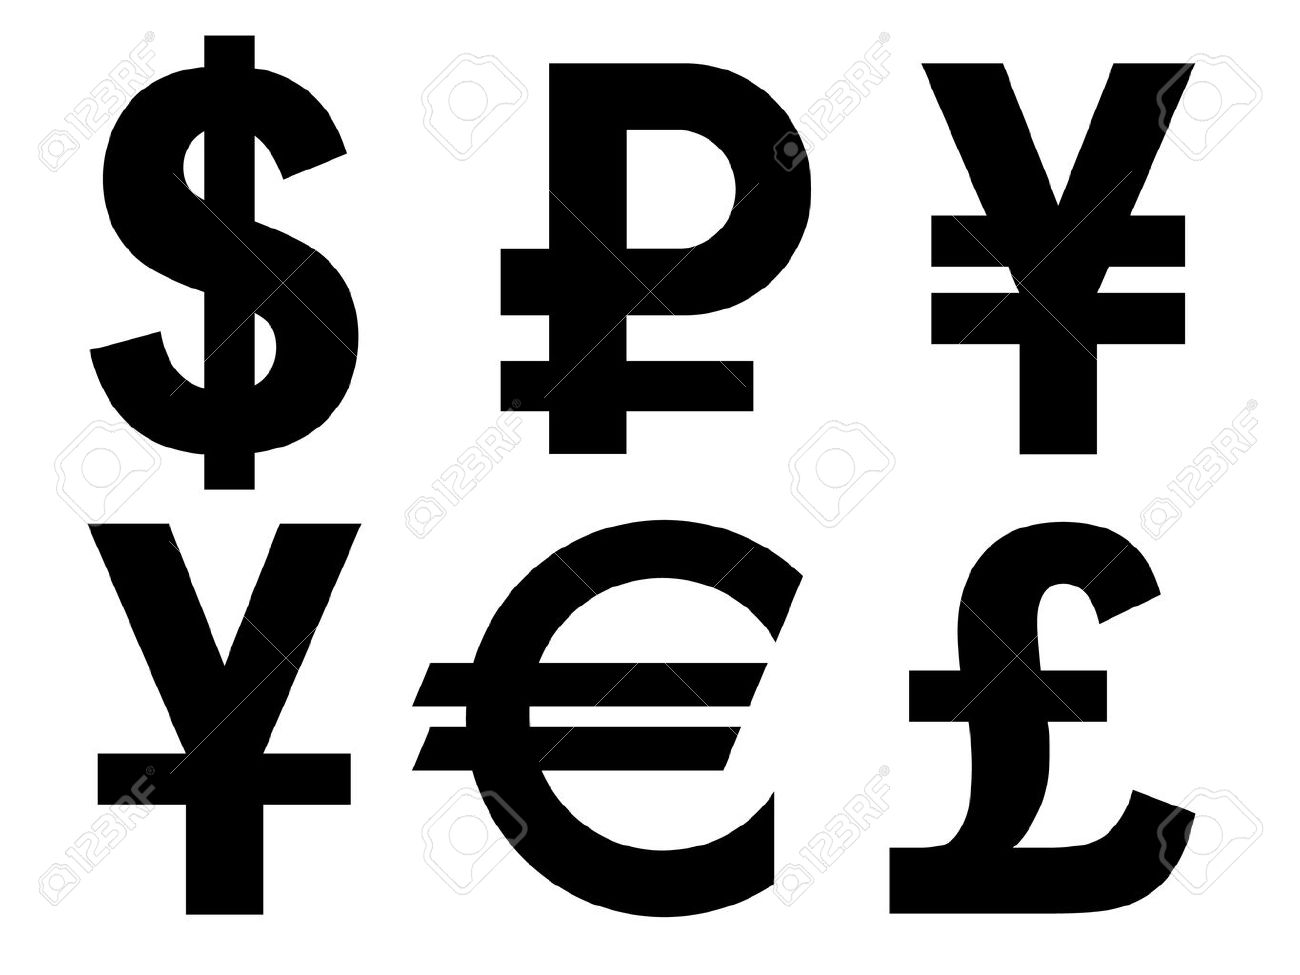 A Set Of Currency Symbols Royalty Free Cliparts Vectors And Stock